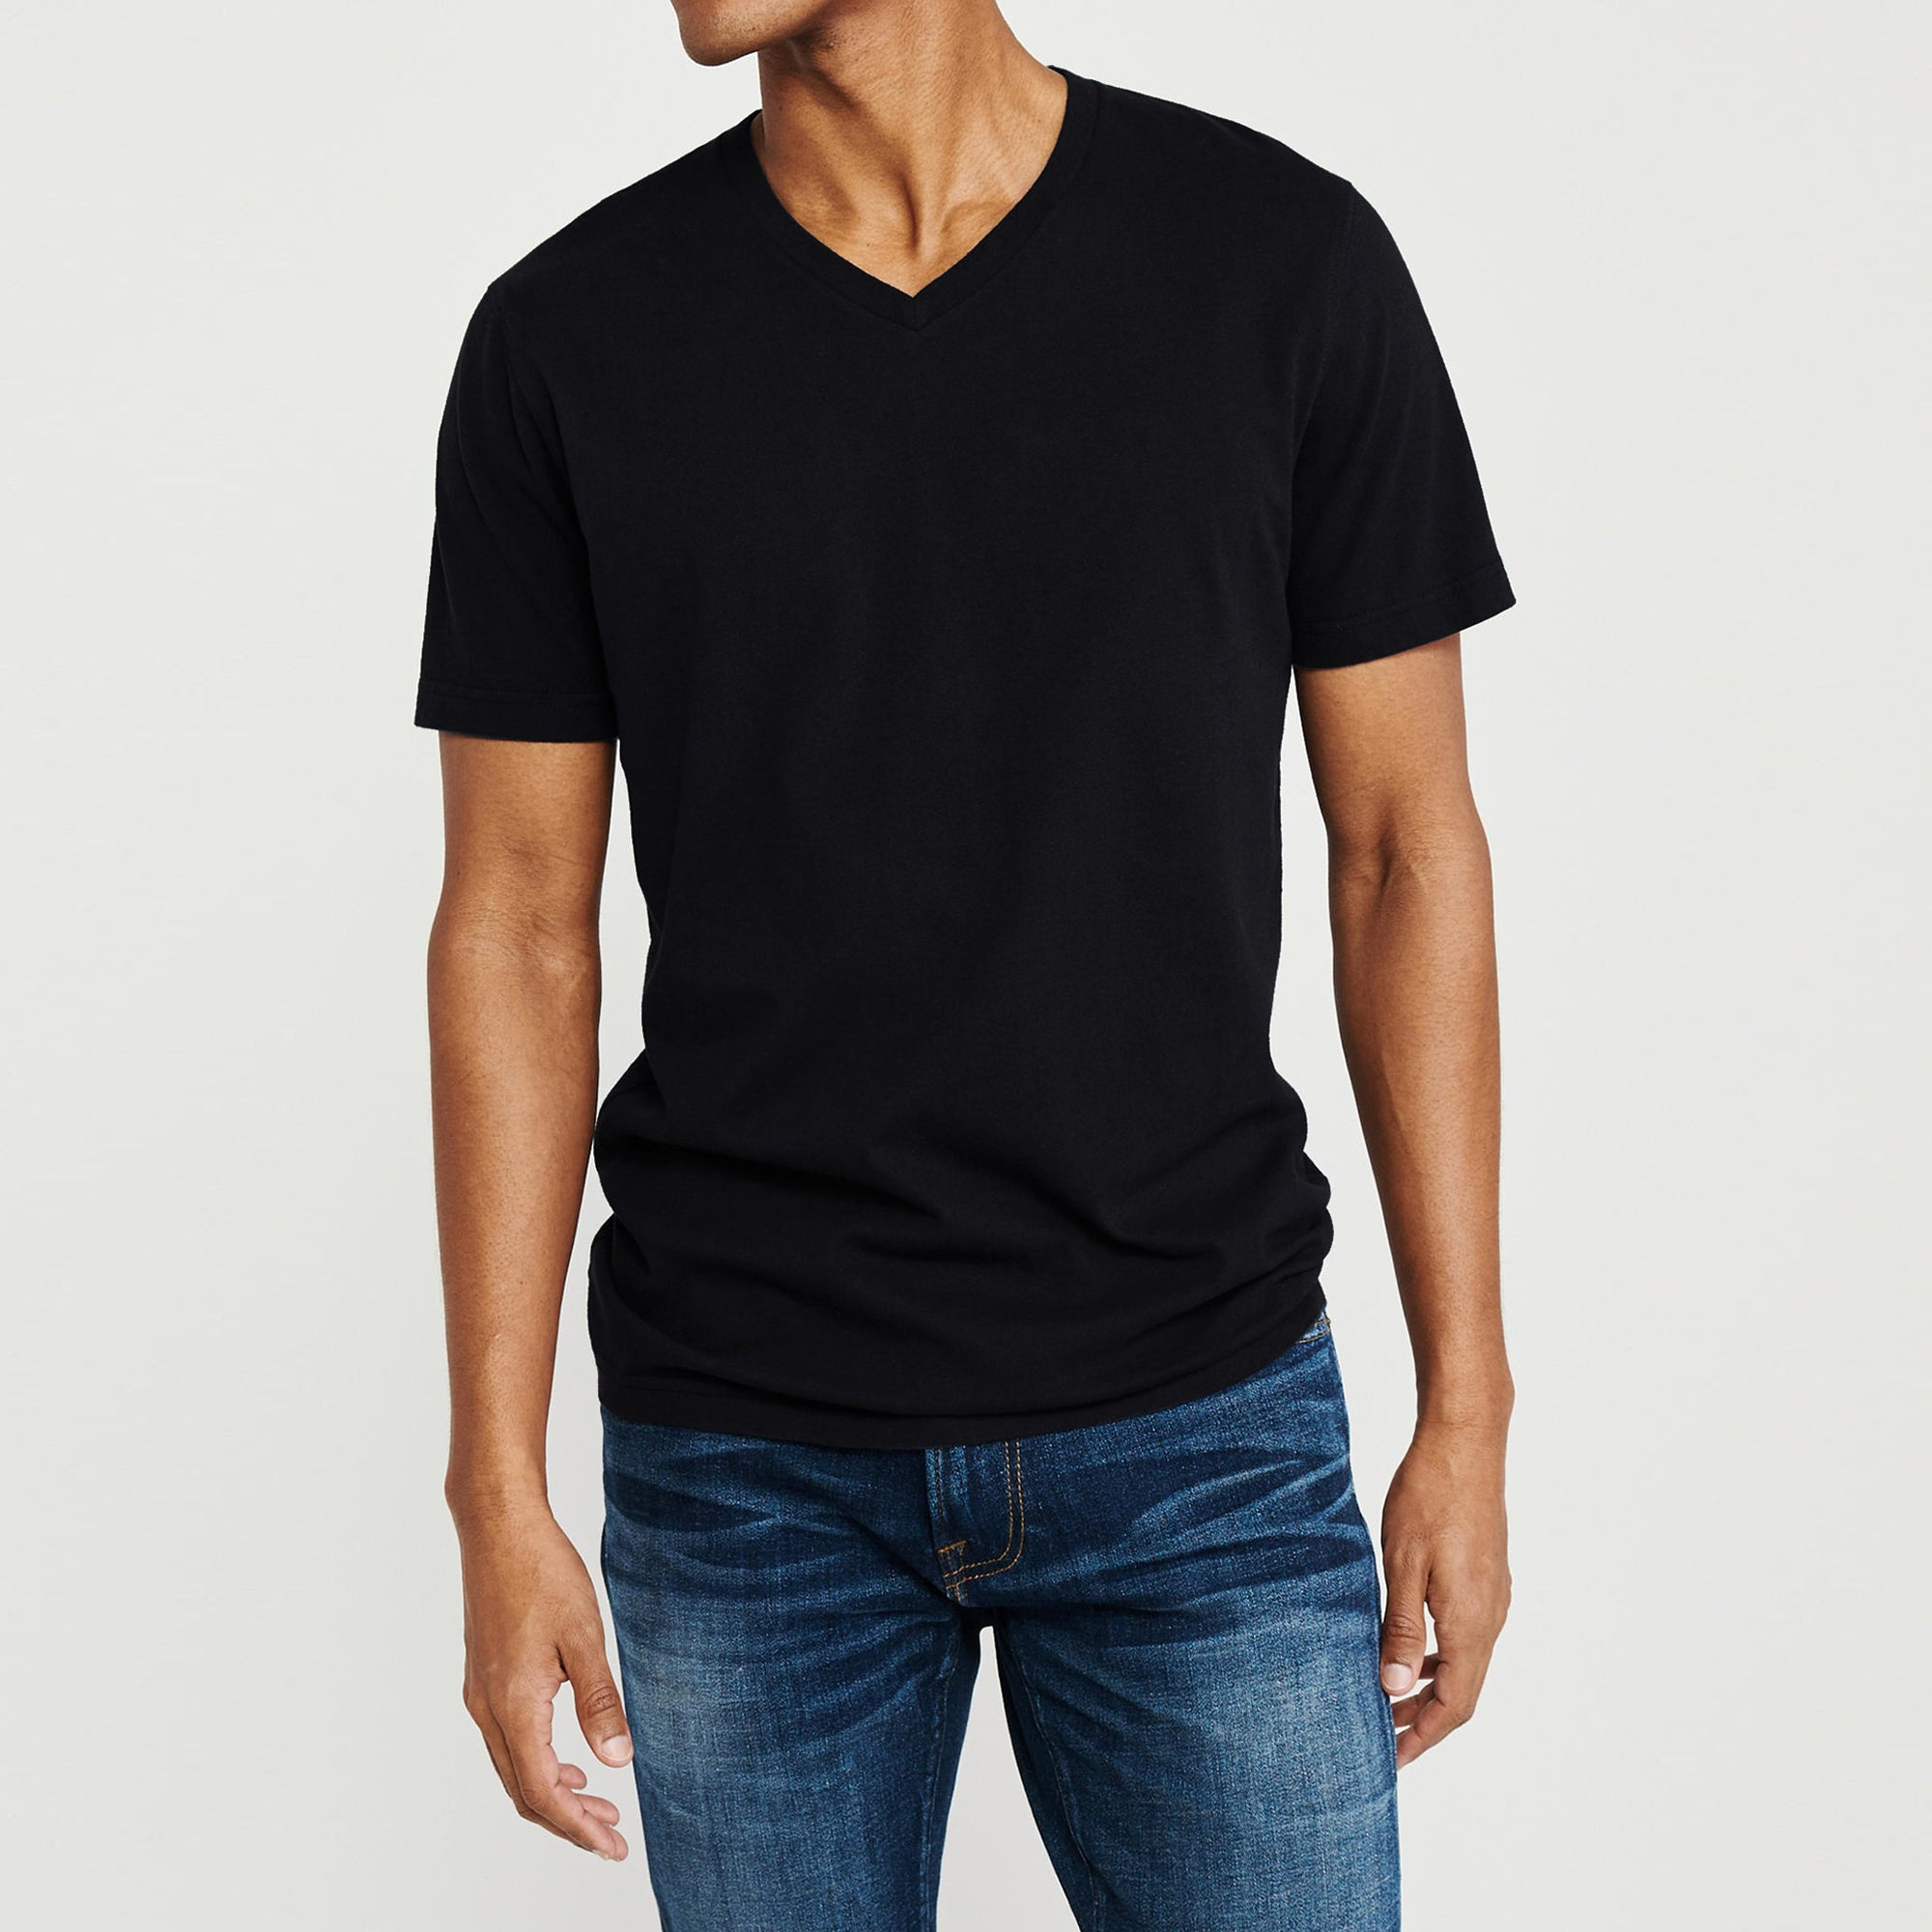 Beverly Hills V Neck Half Sleeve Tee Shirt For Men-Black-BE8206